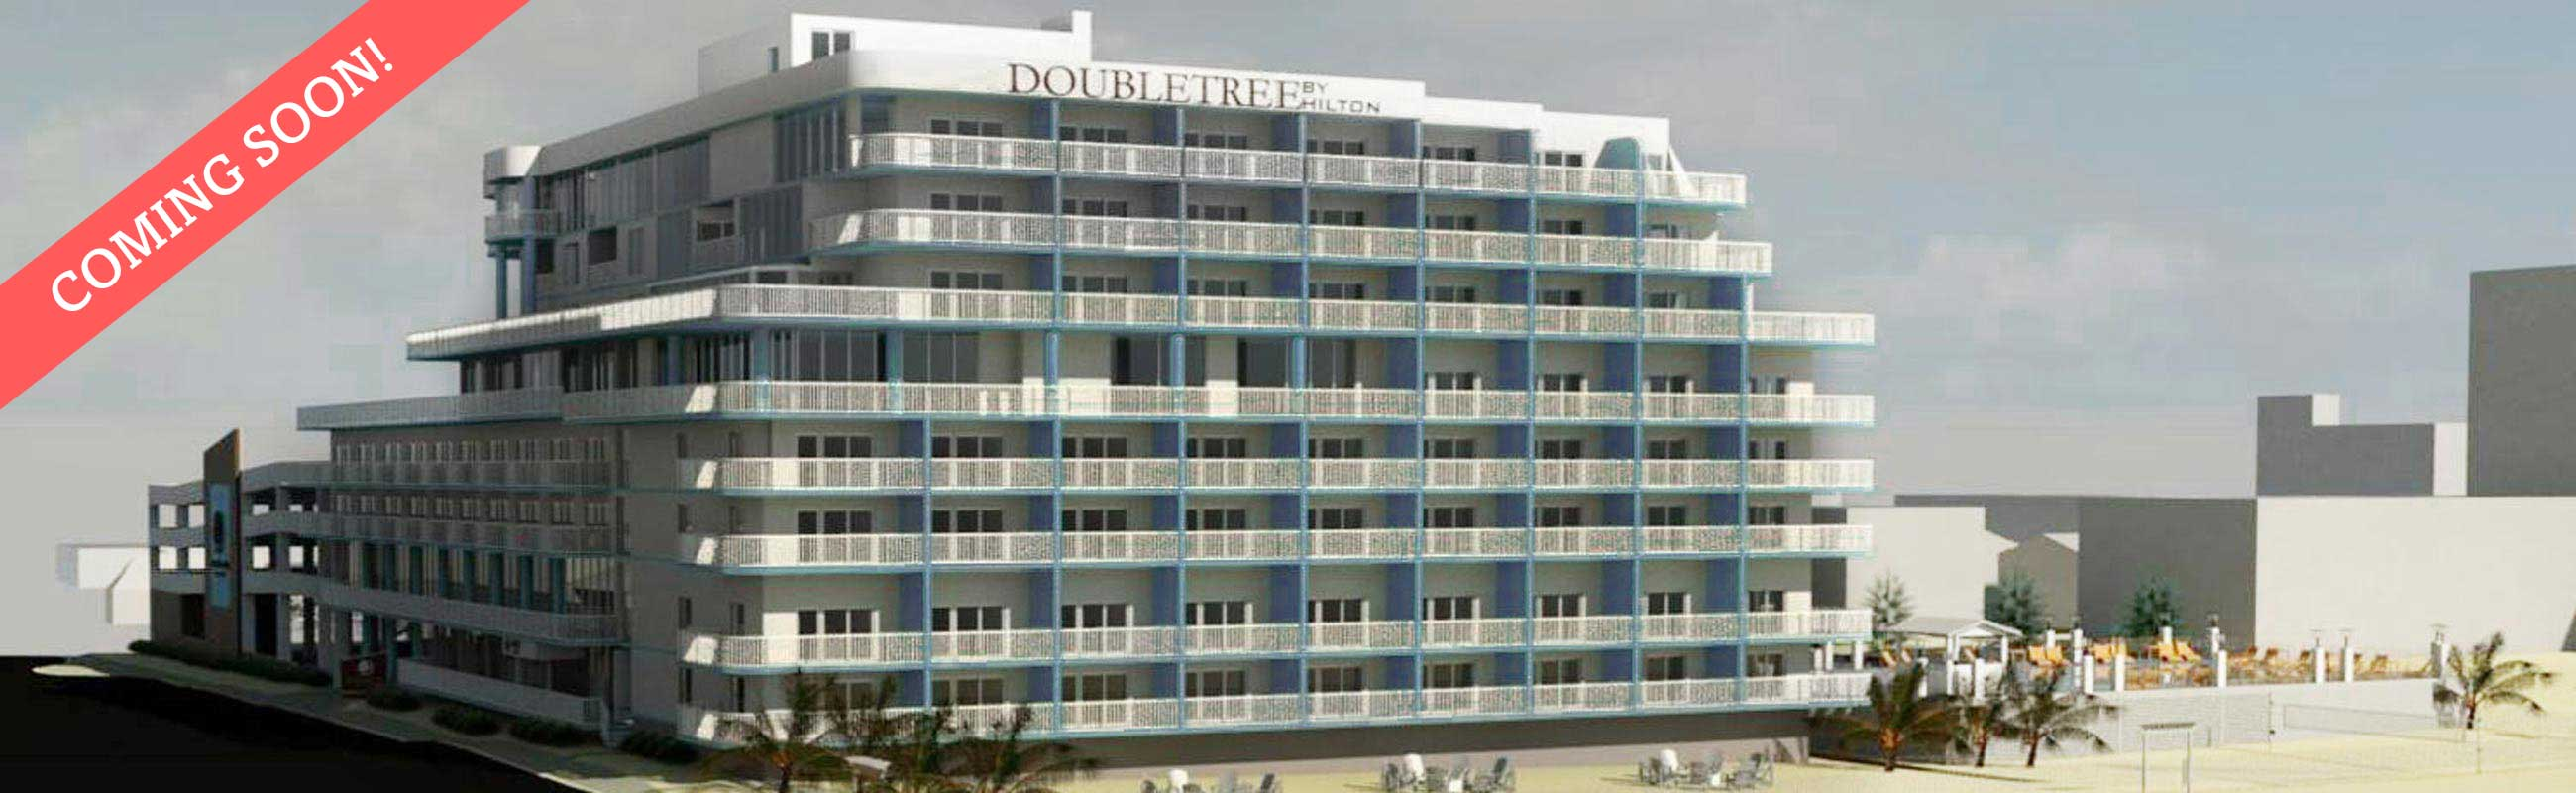 New for 2018: The DoubleTree by Hilton Ocean City Oceanfront